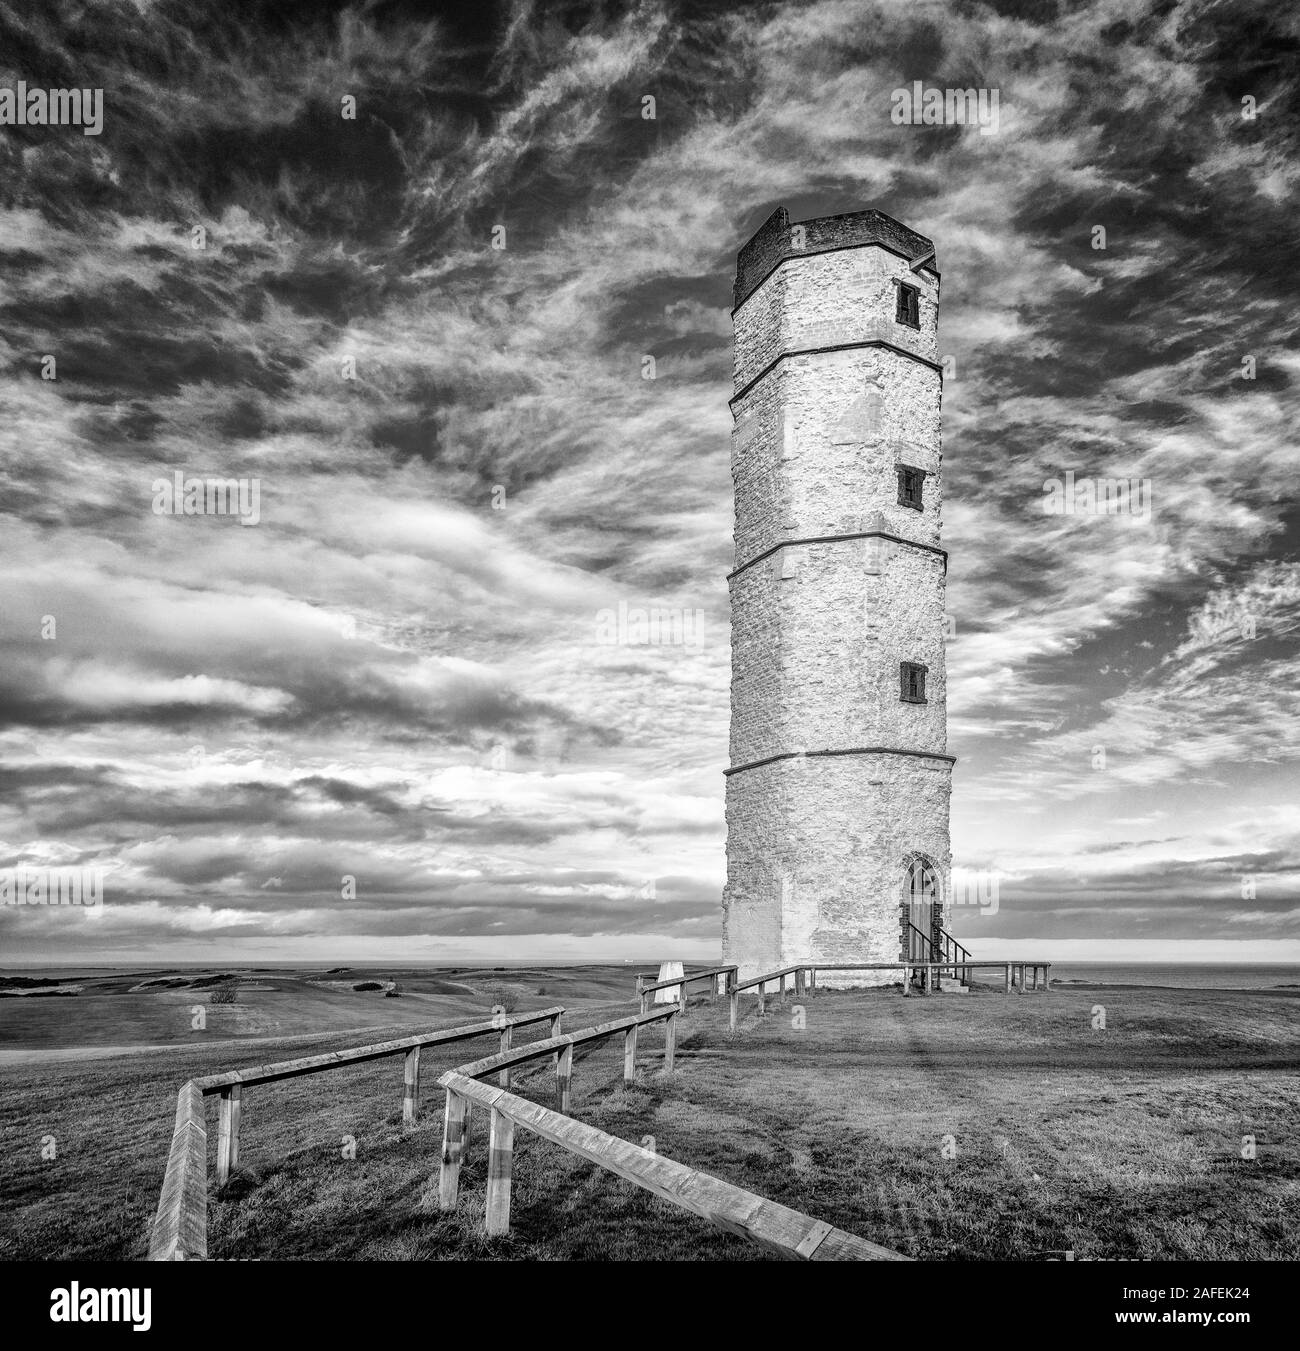 The old Chalk Tower listed building at Flamborough Head with a stunning sky backdrop, East Riding of Yorkshire, UK Stock Photo